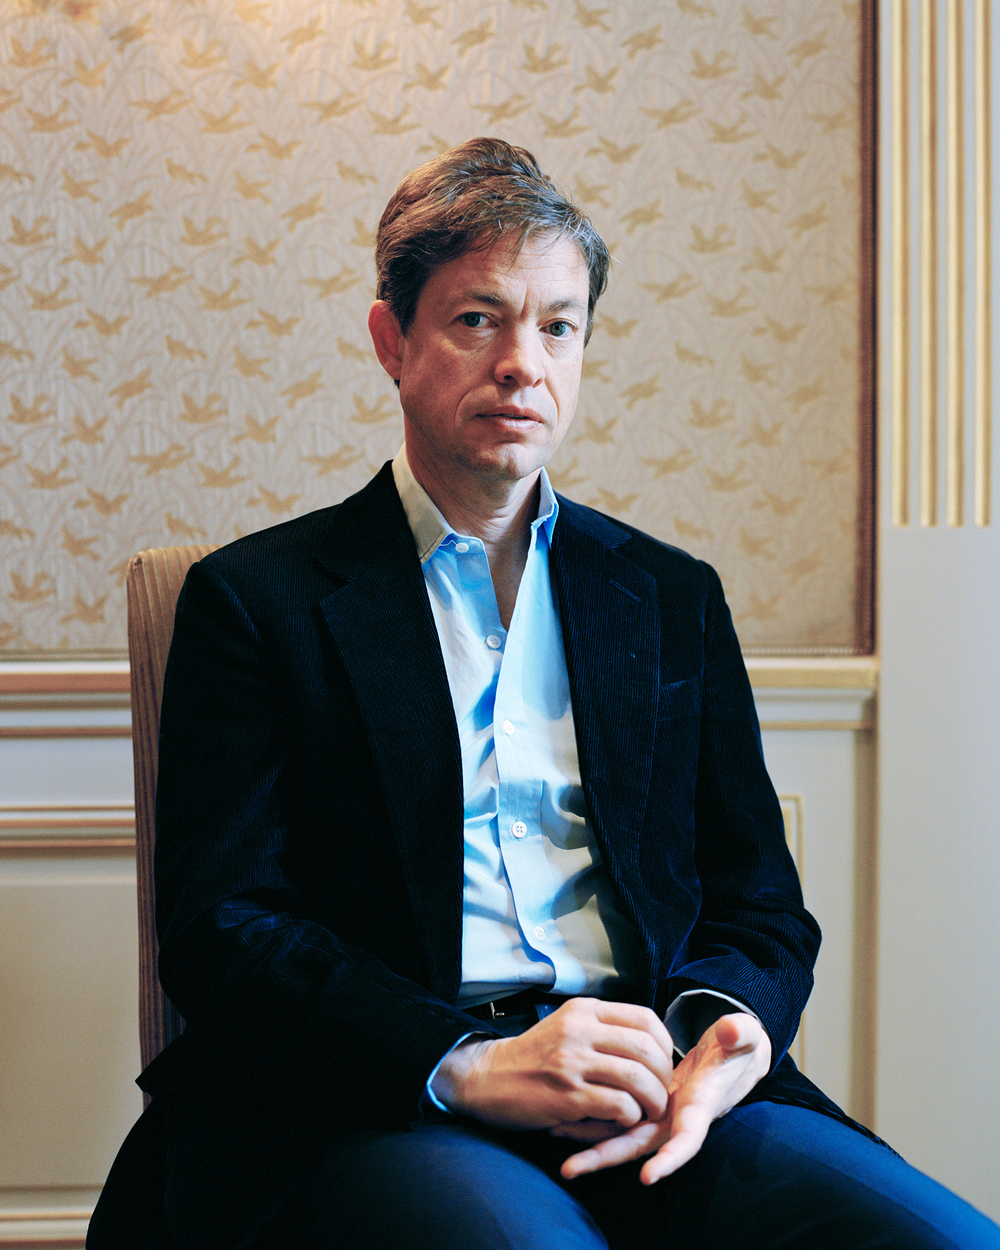 Nicolas Berggruen in London at Claridge's Hotel.